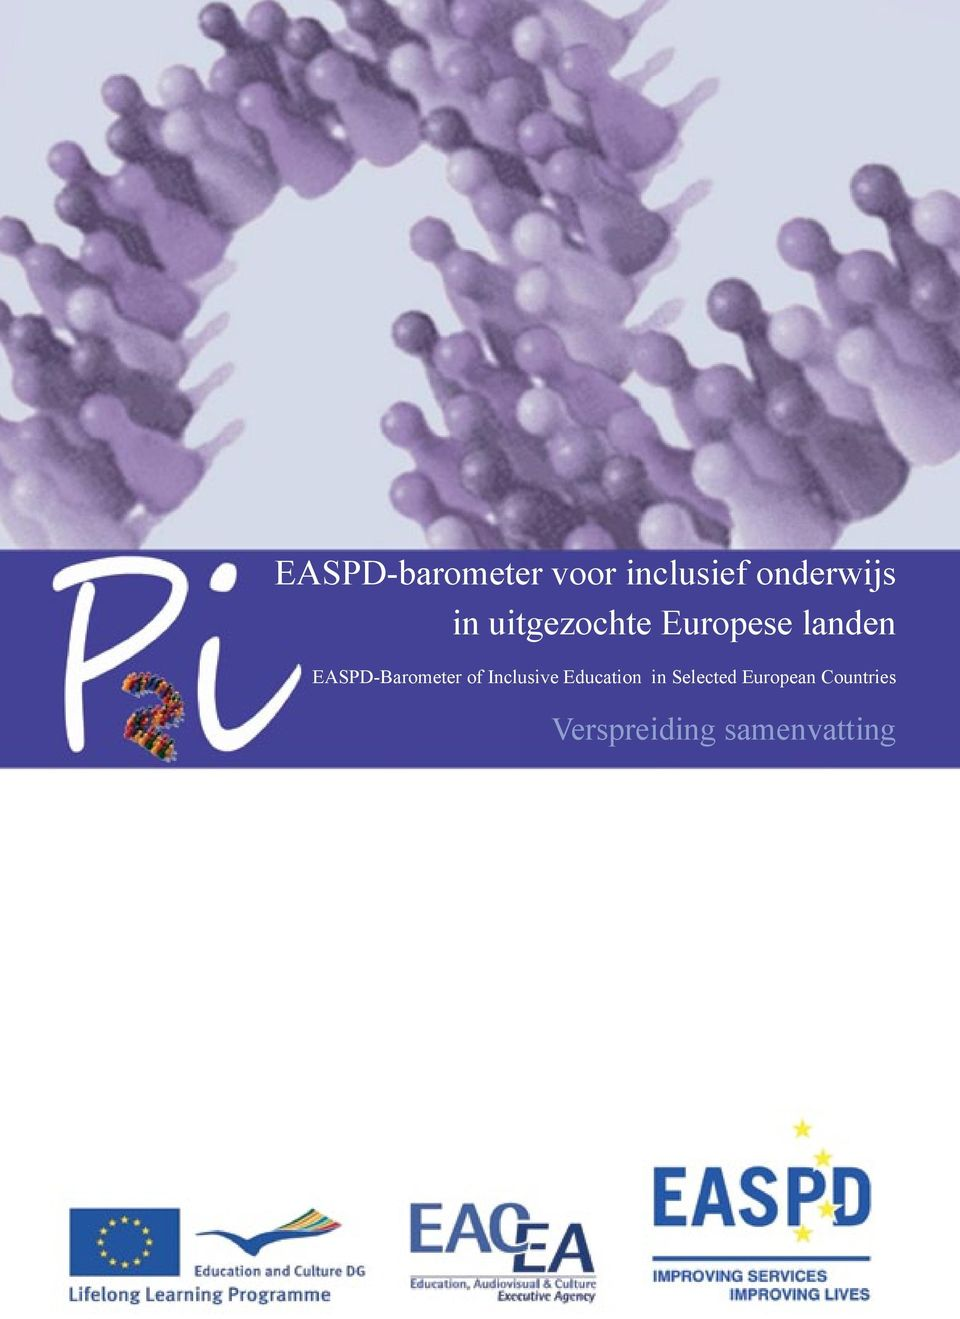 EASPD-Barometer of Inclusive Education in